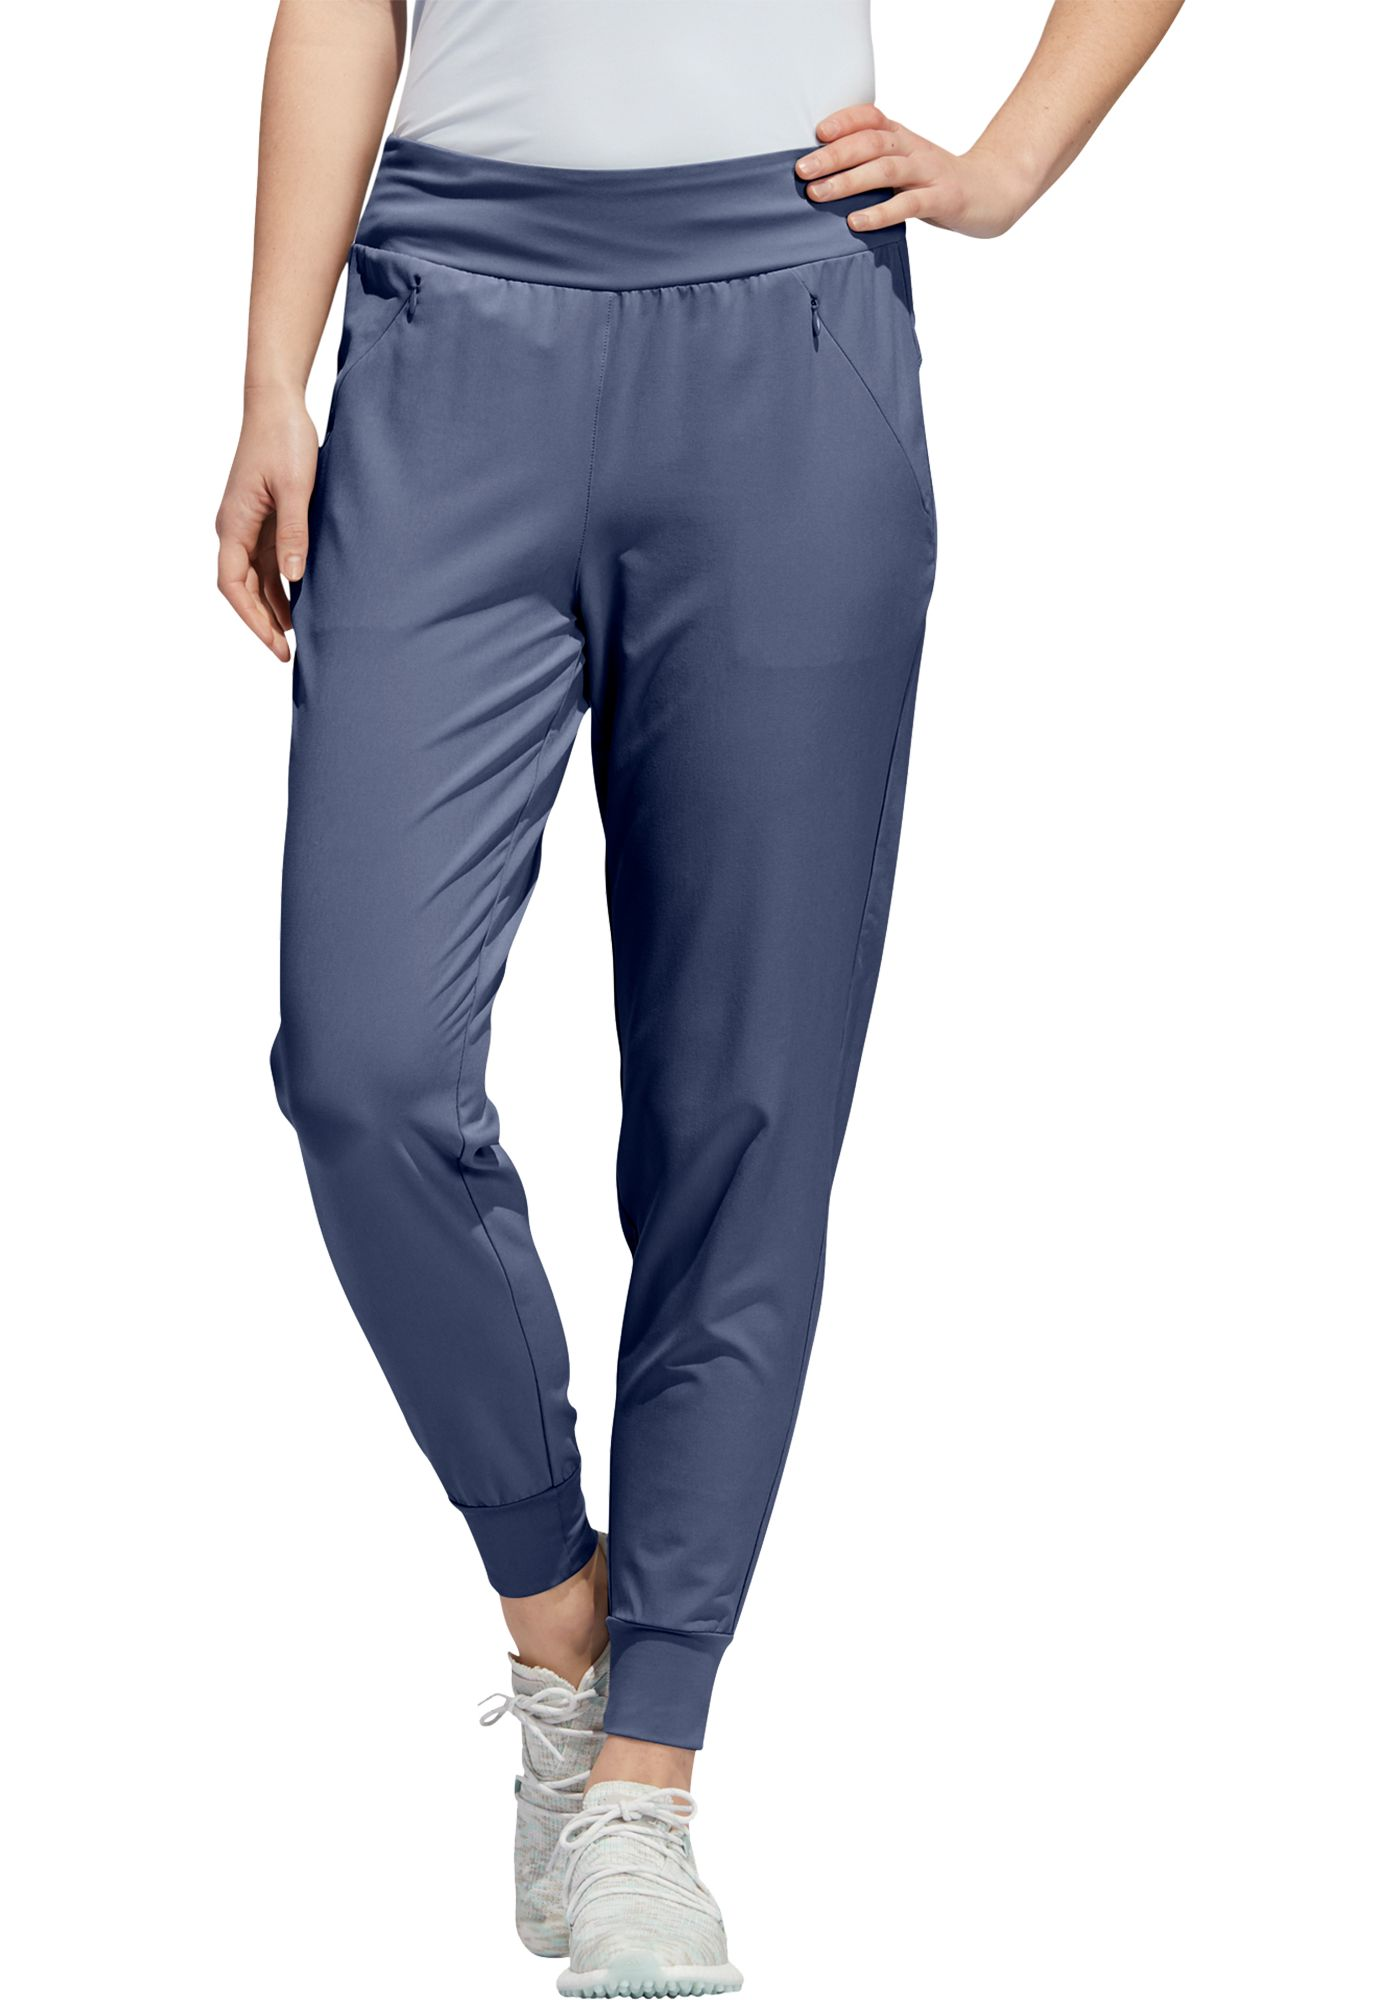 adidas Women's Beyond 18 Golf Pants